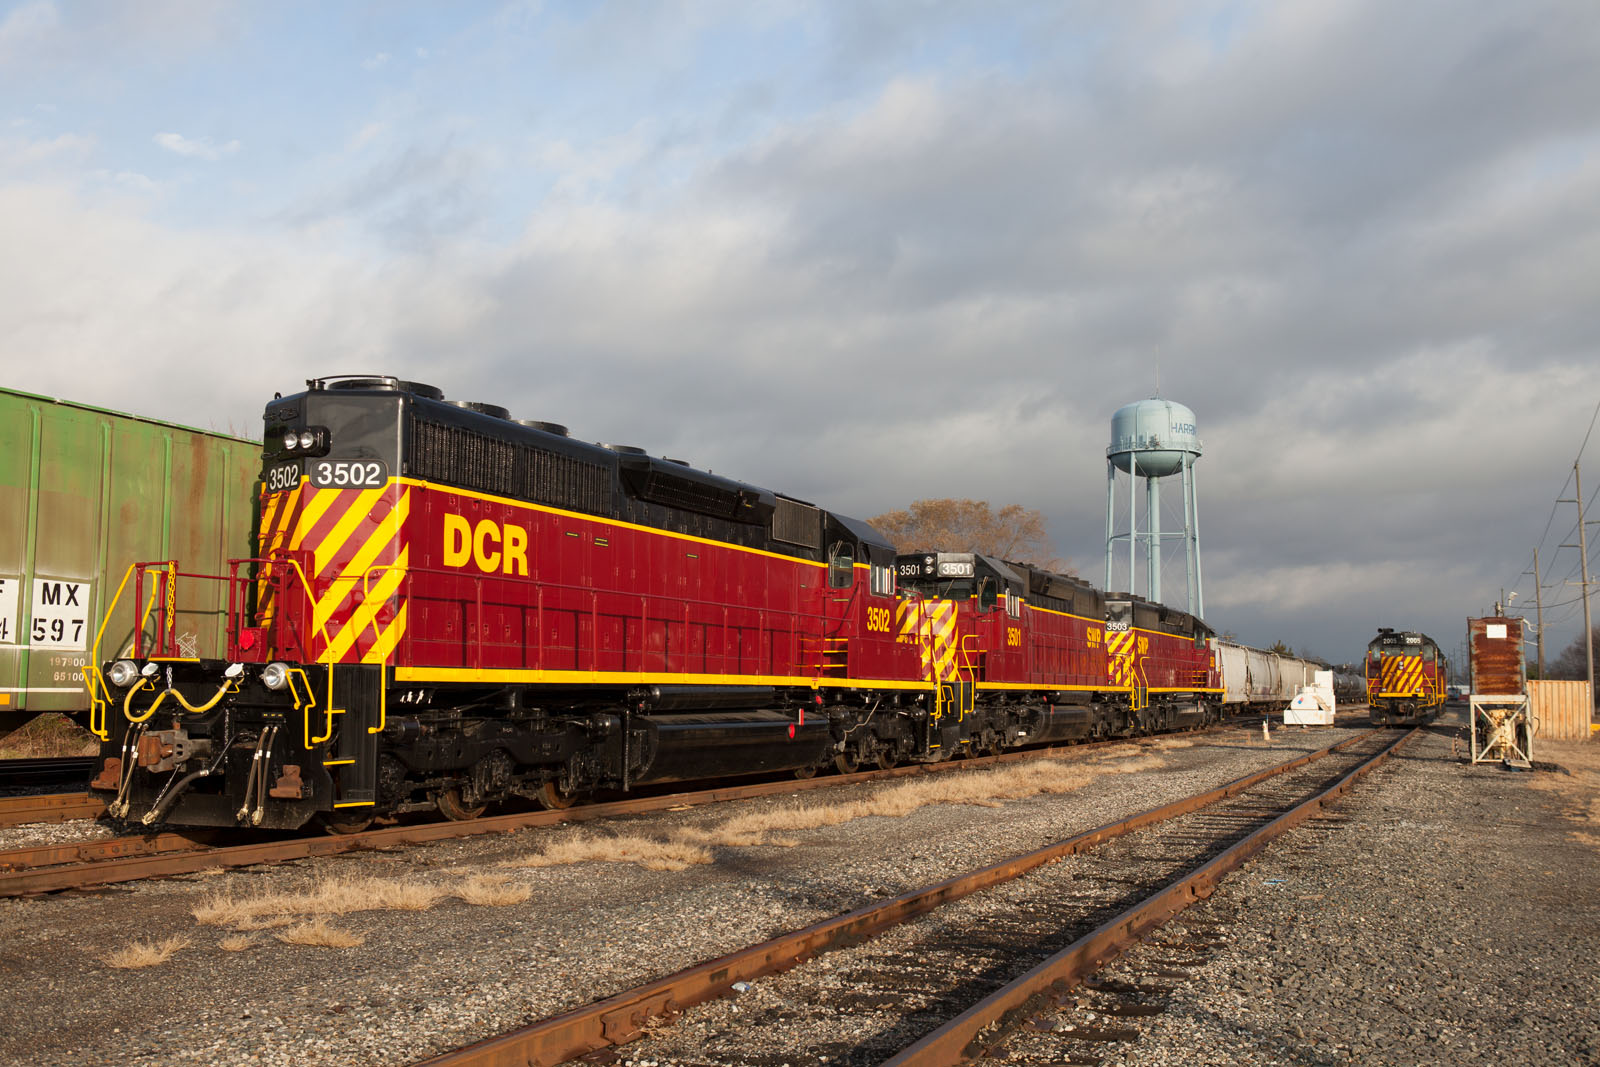 DCR 3502 at Harrington